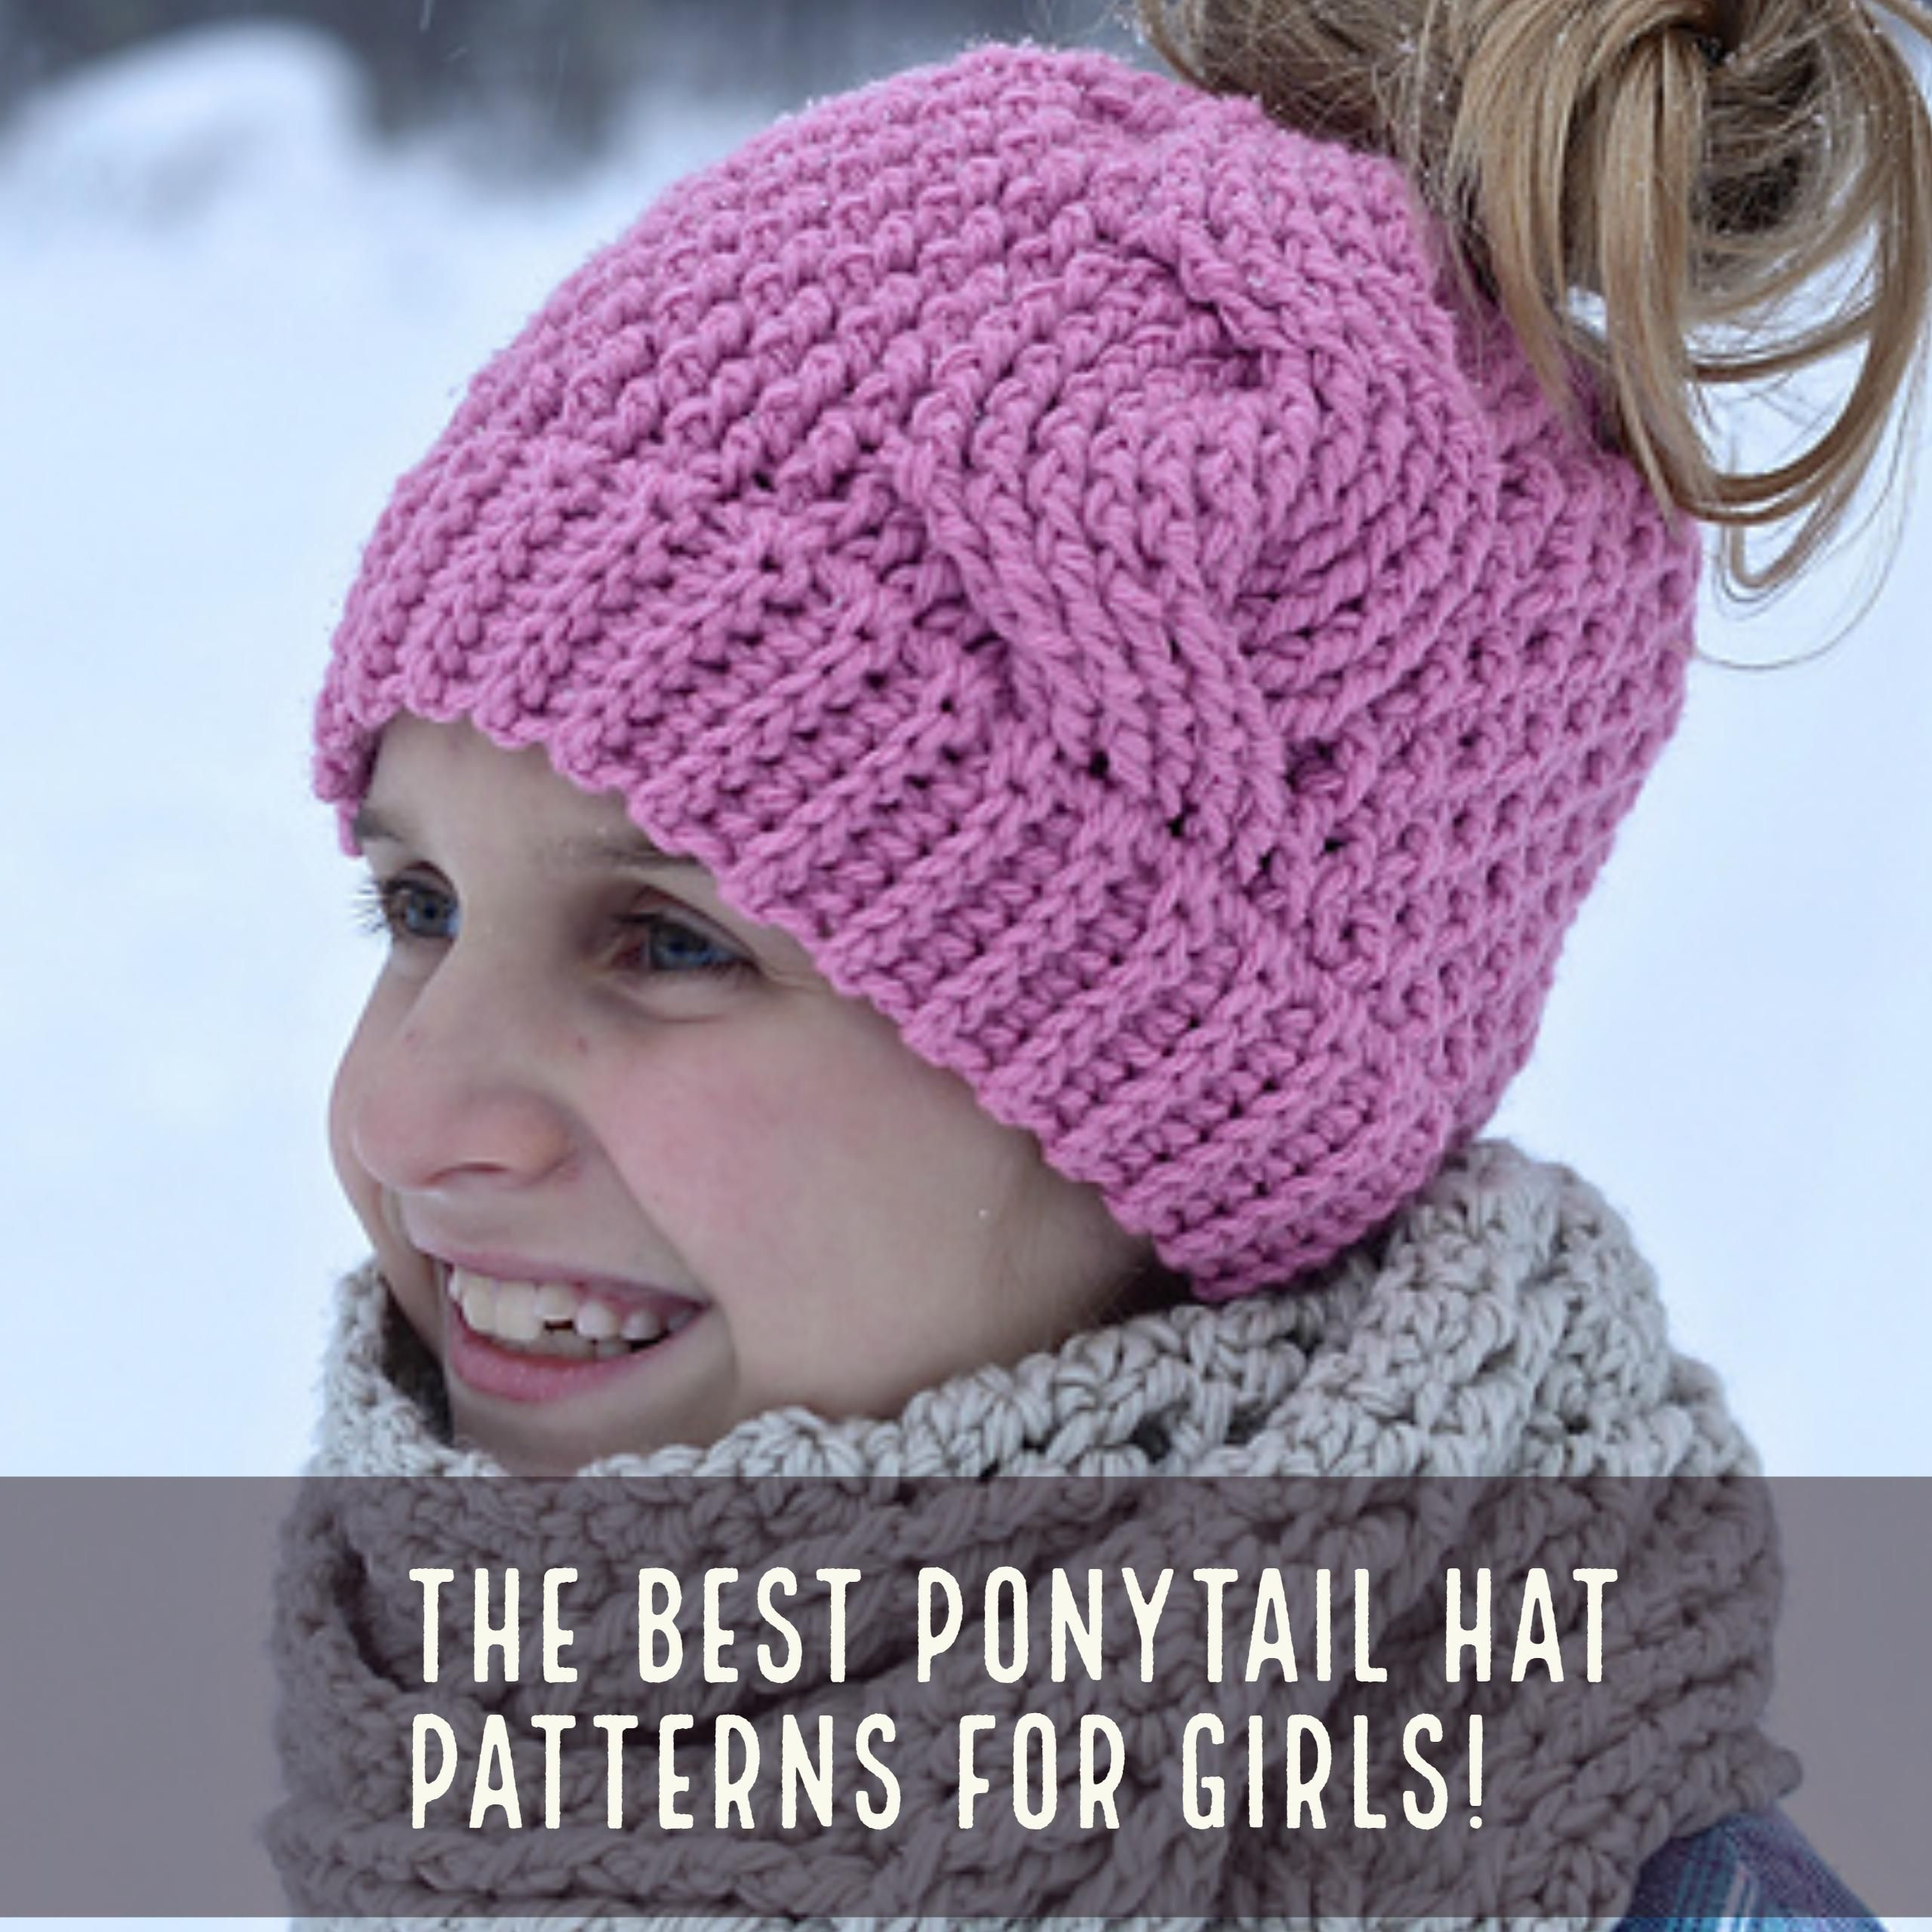 The Best Ponytail Hat Patterns (aka Messy Bun Beanies) for Little ... 07c5930e6cf